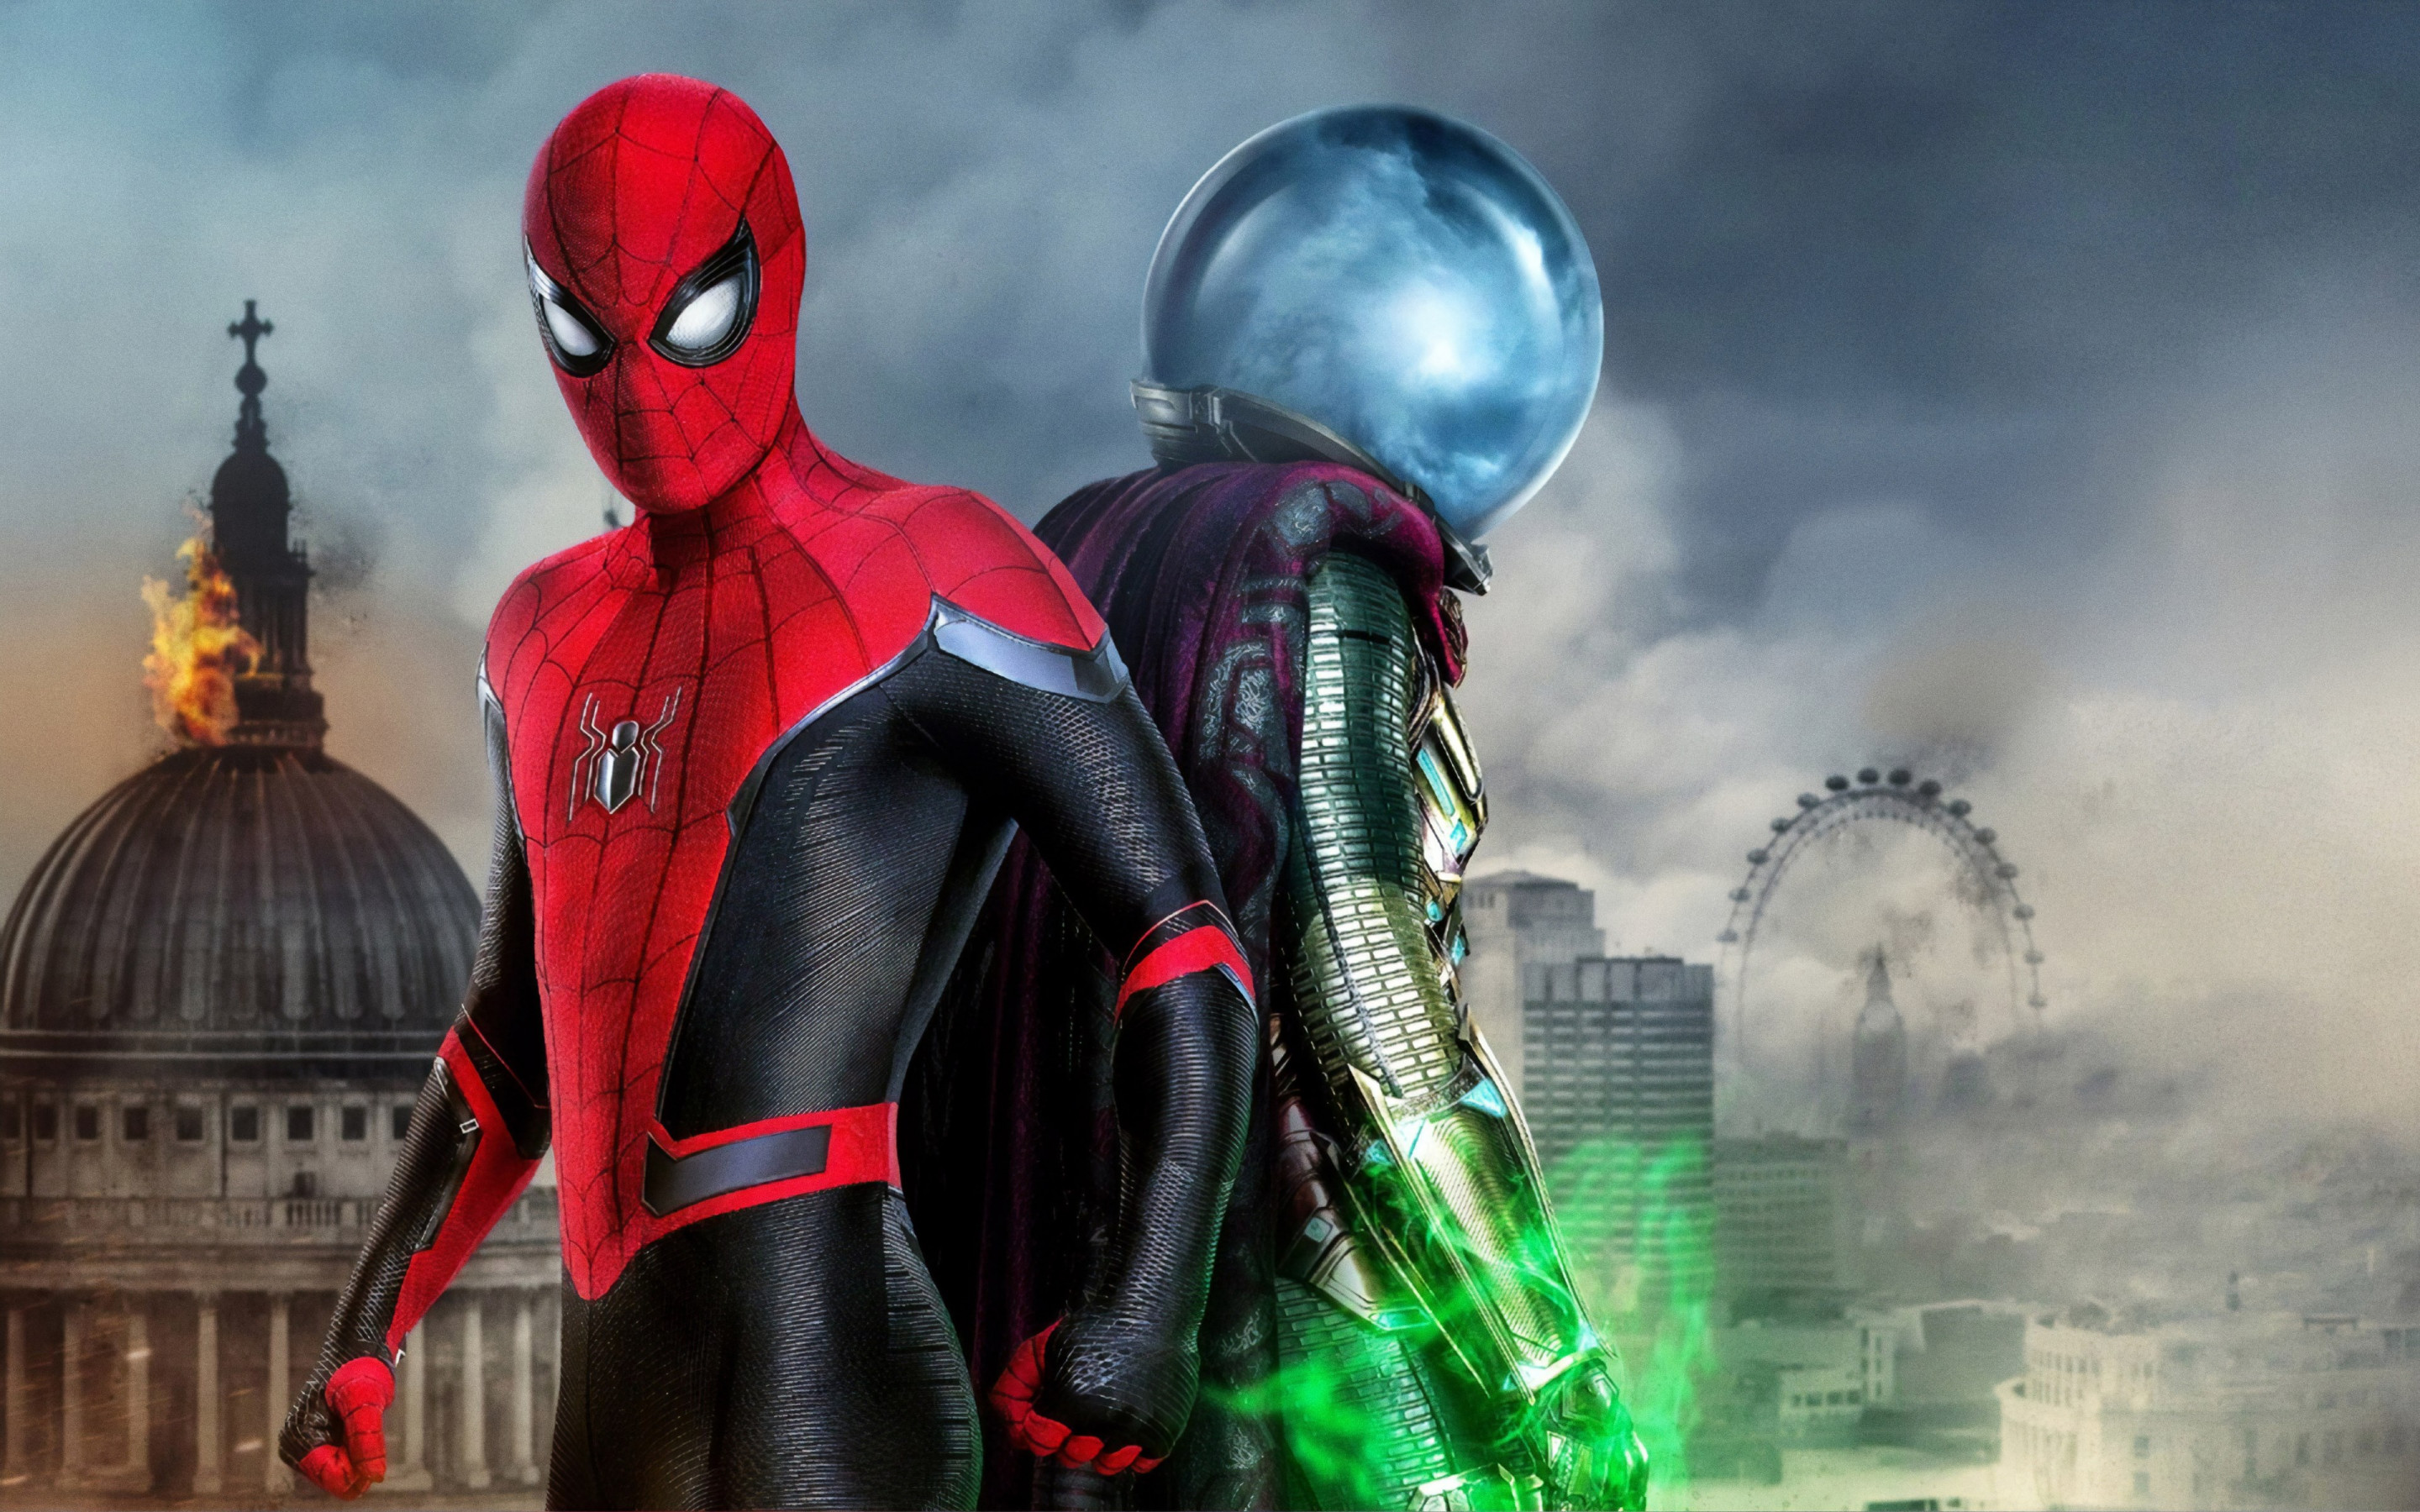 Download Wallpaper Spider Man And Mysterio 2880x1800